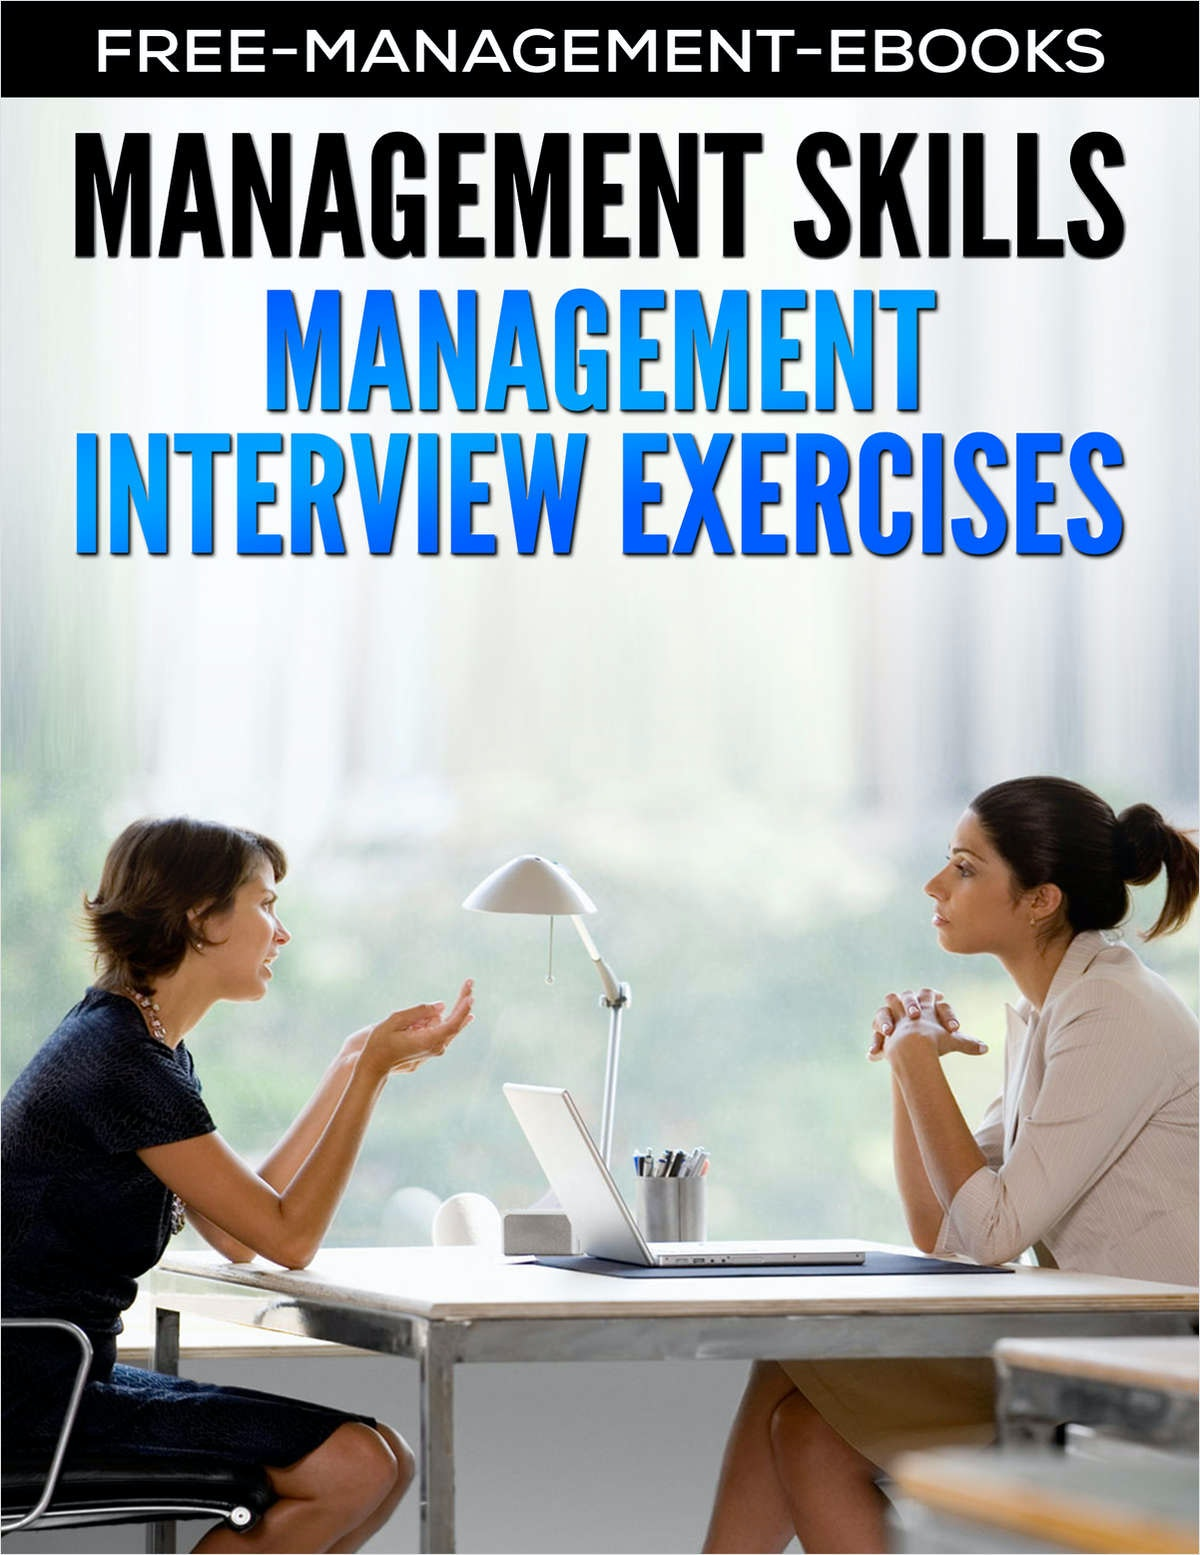 Management Interview Exercises - Developing Your Management Skills